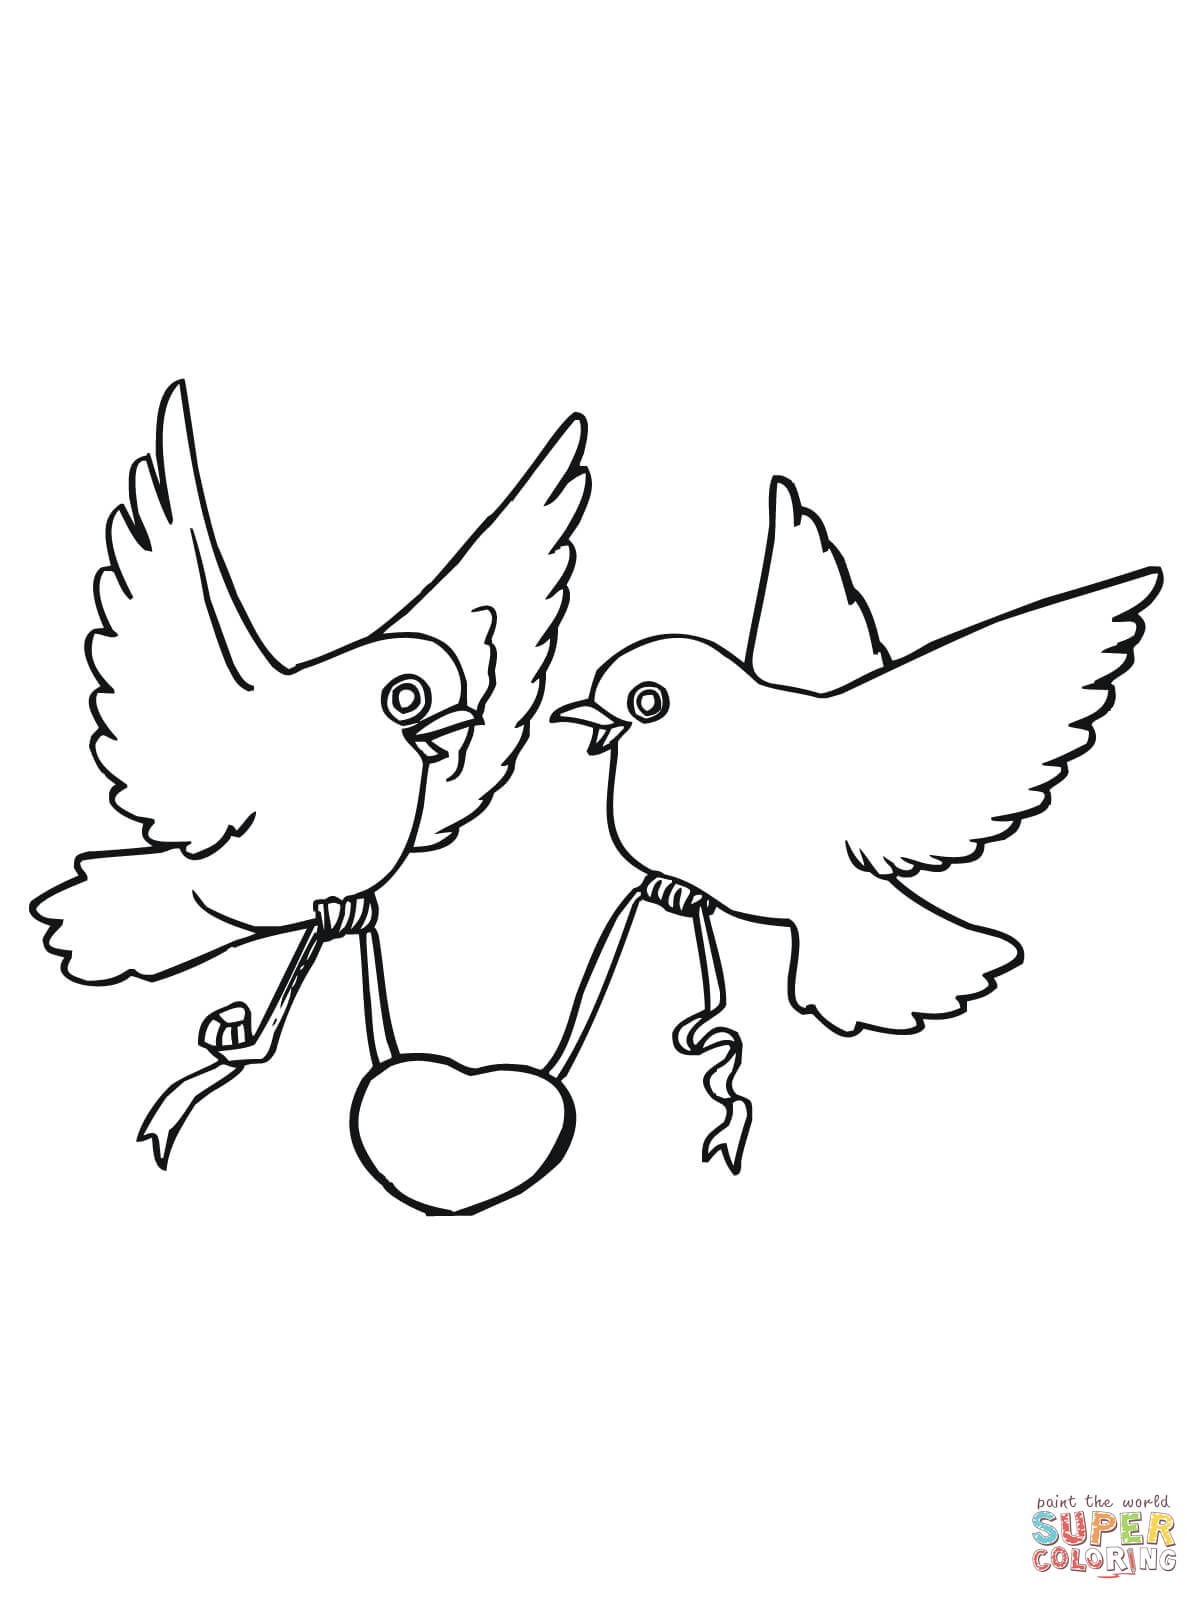 Love Bird Coloring Pages Love Birds With Hearts Coloring Page Free Printable Coloring Pages